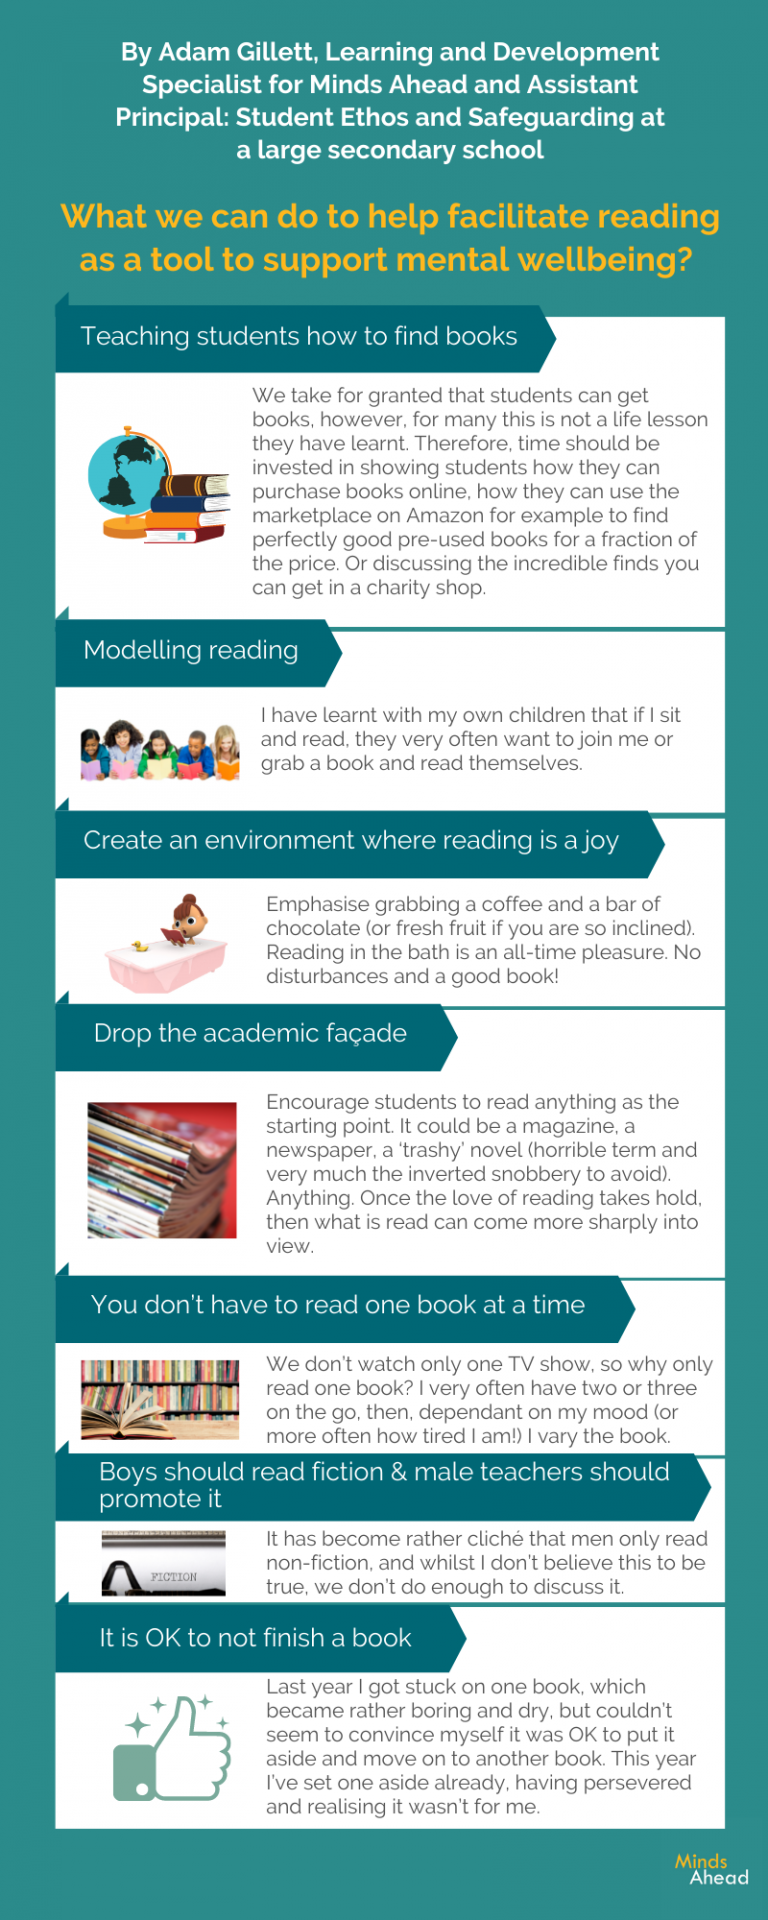 What we can do to help facilitate reading as a tool to support mental wellbeing